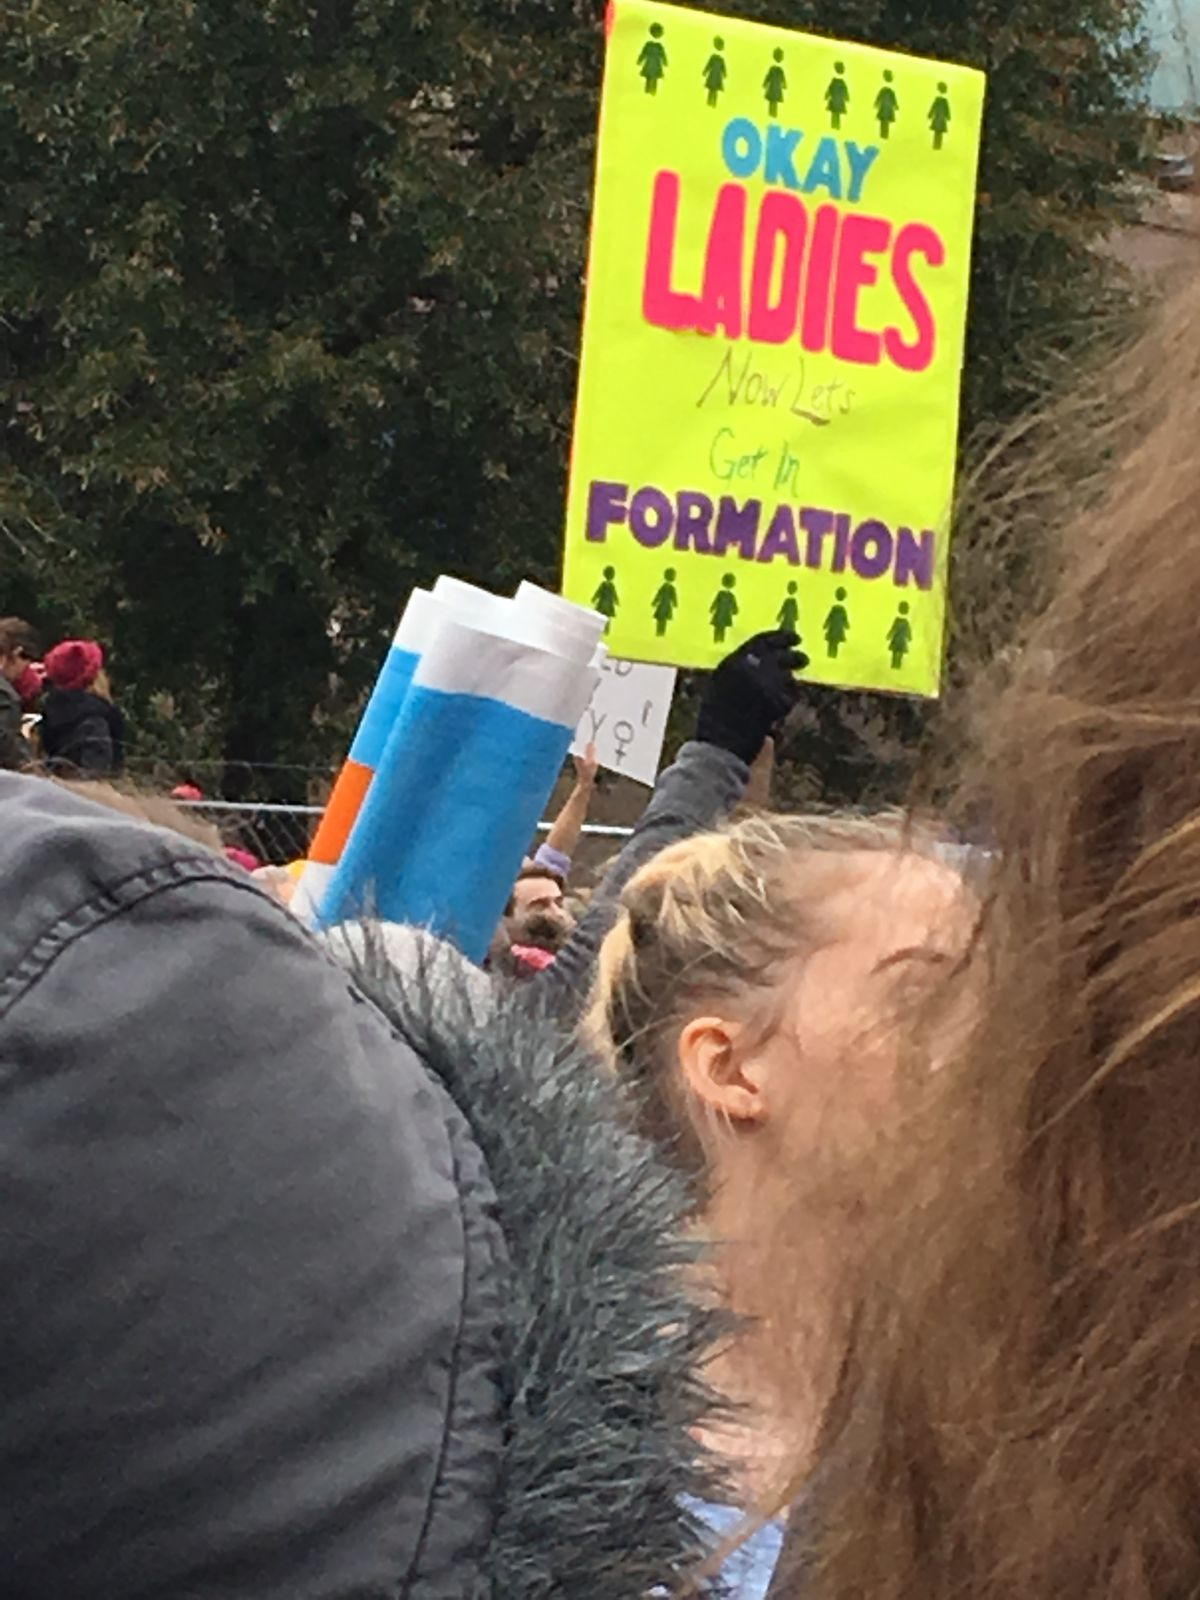 A sign at the Women's March on Washington.